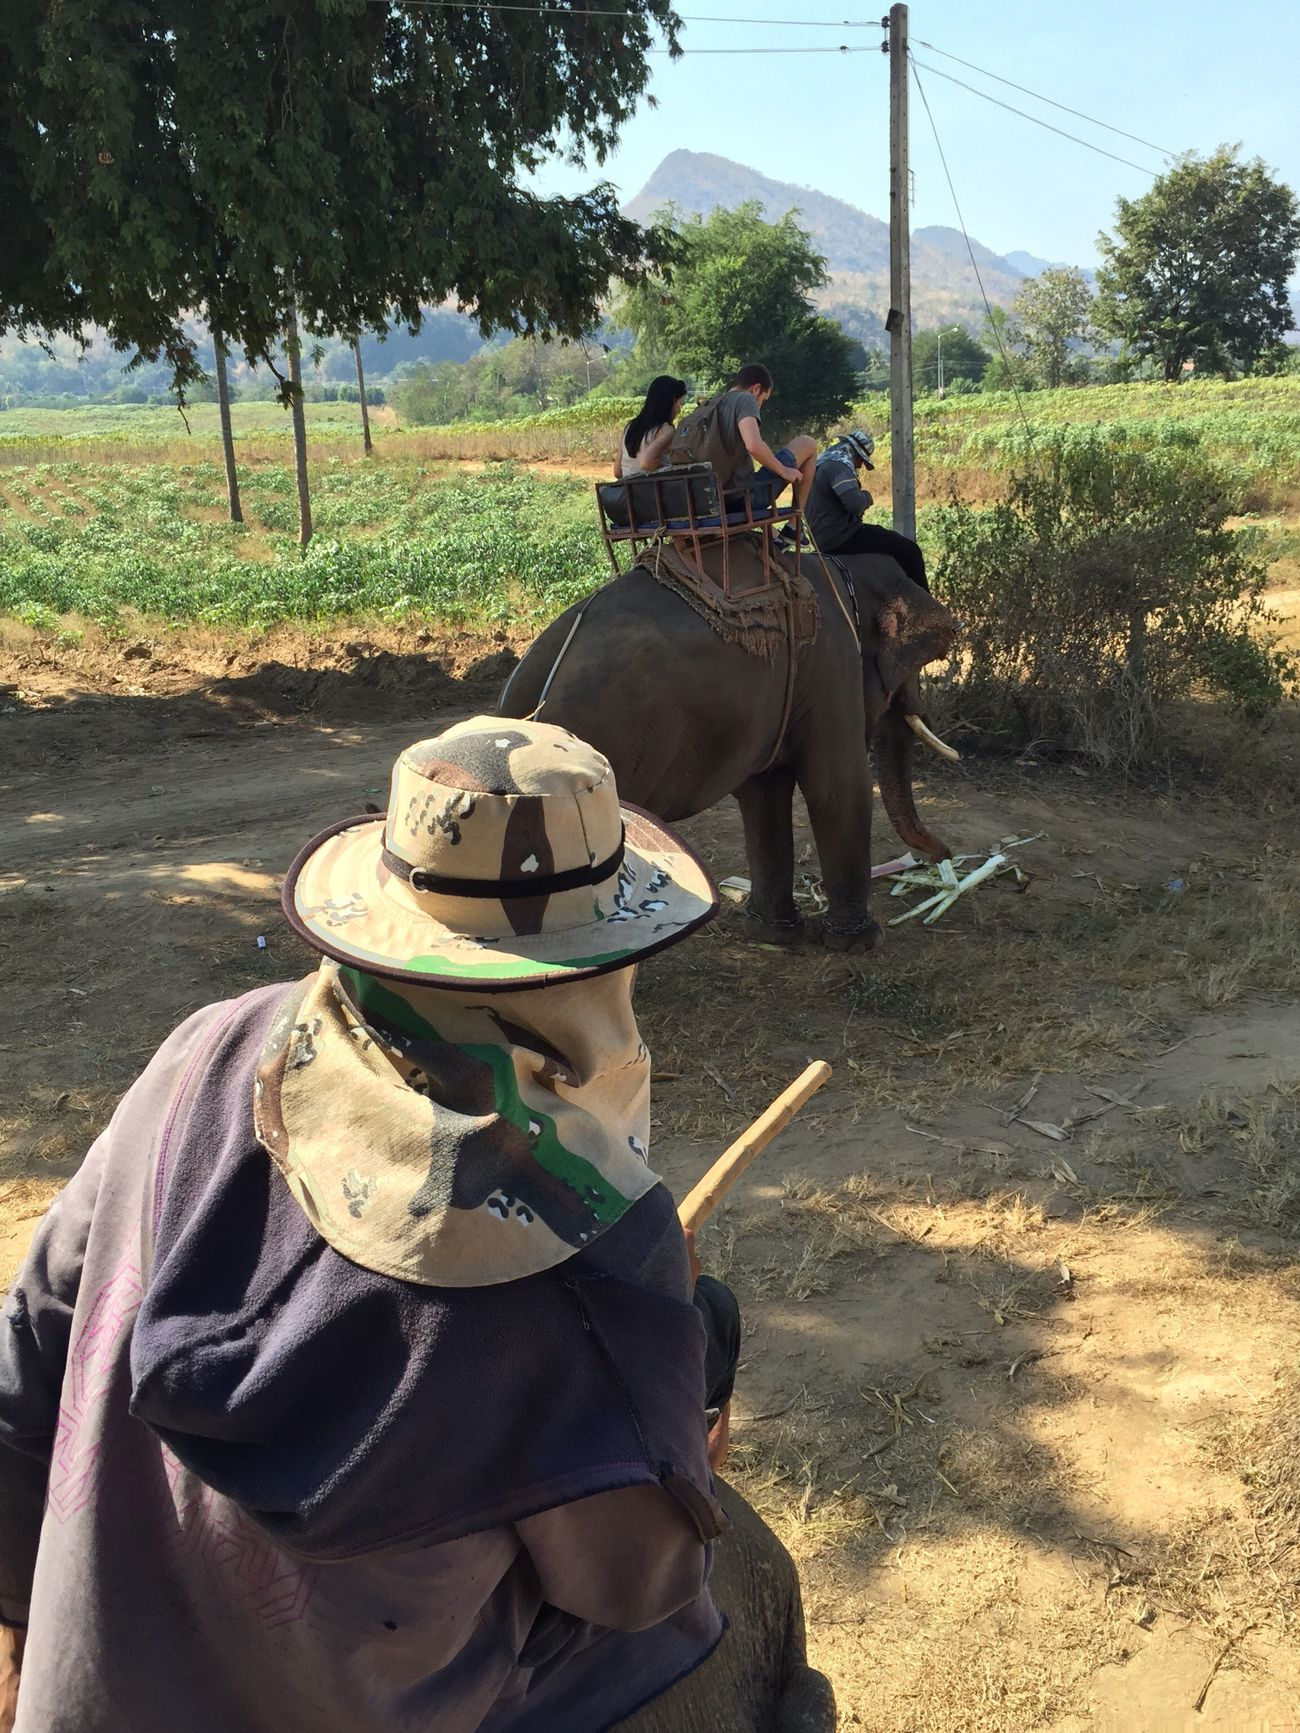 Adventure Buddies Our guide on elephant trekking in Thailand. Check This Out Travel Travelling Unique Tadaa Community Thailand Animals Nature Elephant Adventure Elephant Trekking Adventure Club On The Way